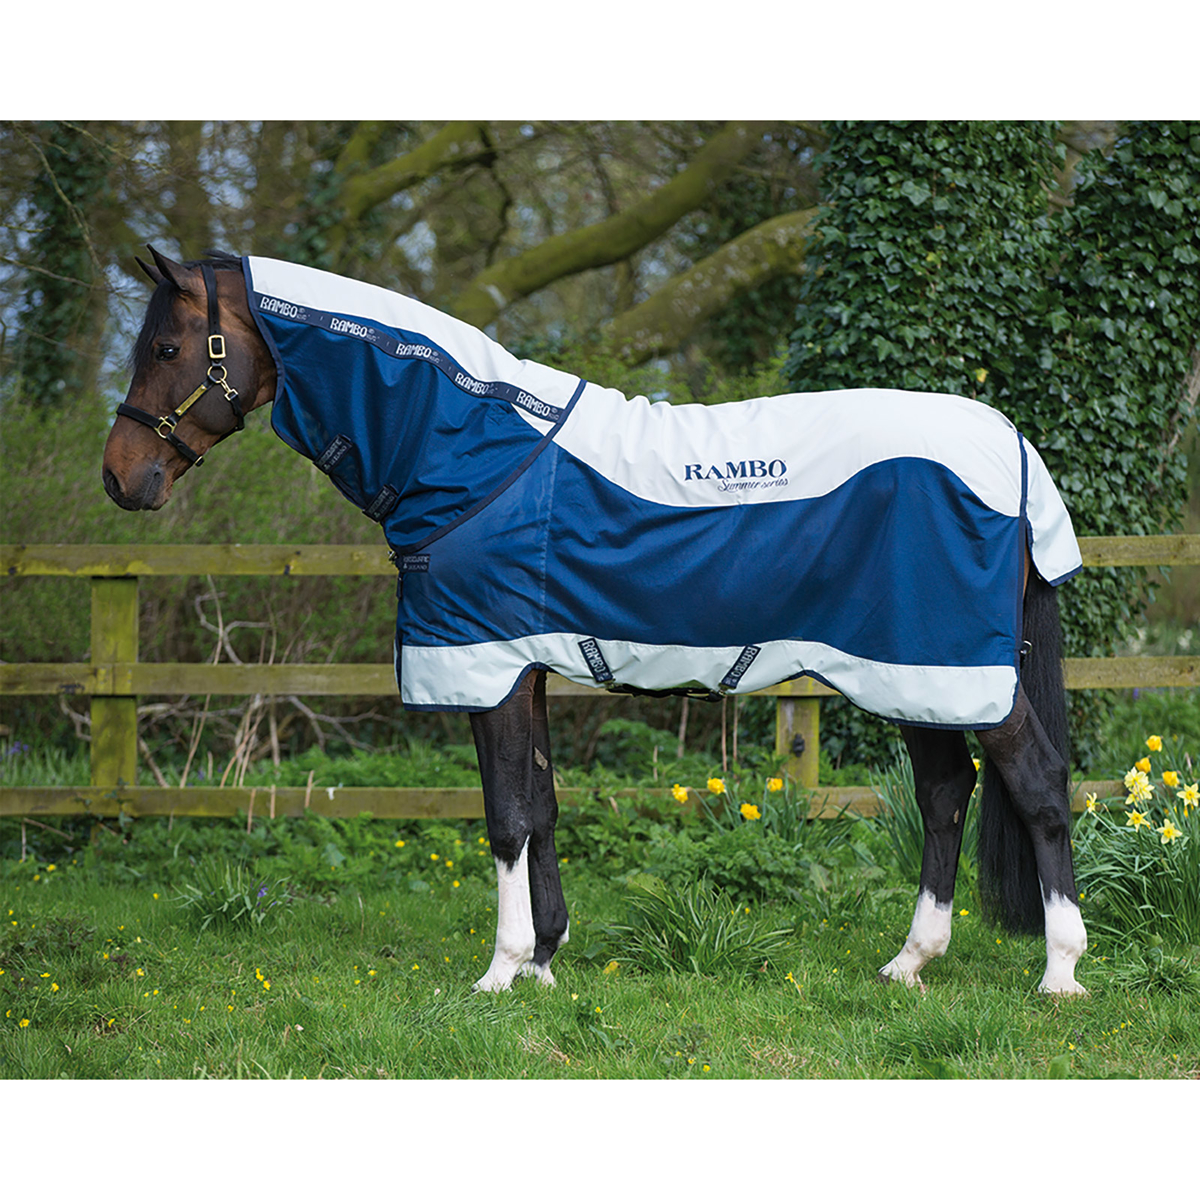 Horseware Rambo Summer Series Utegangstacke